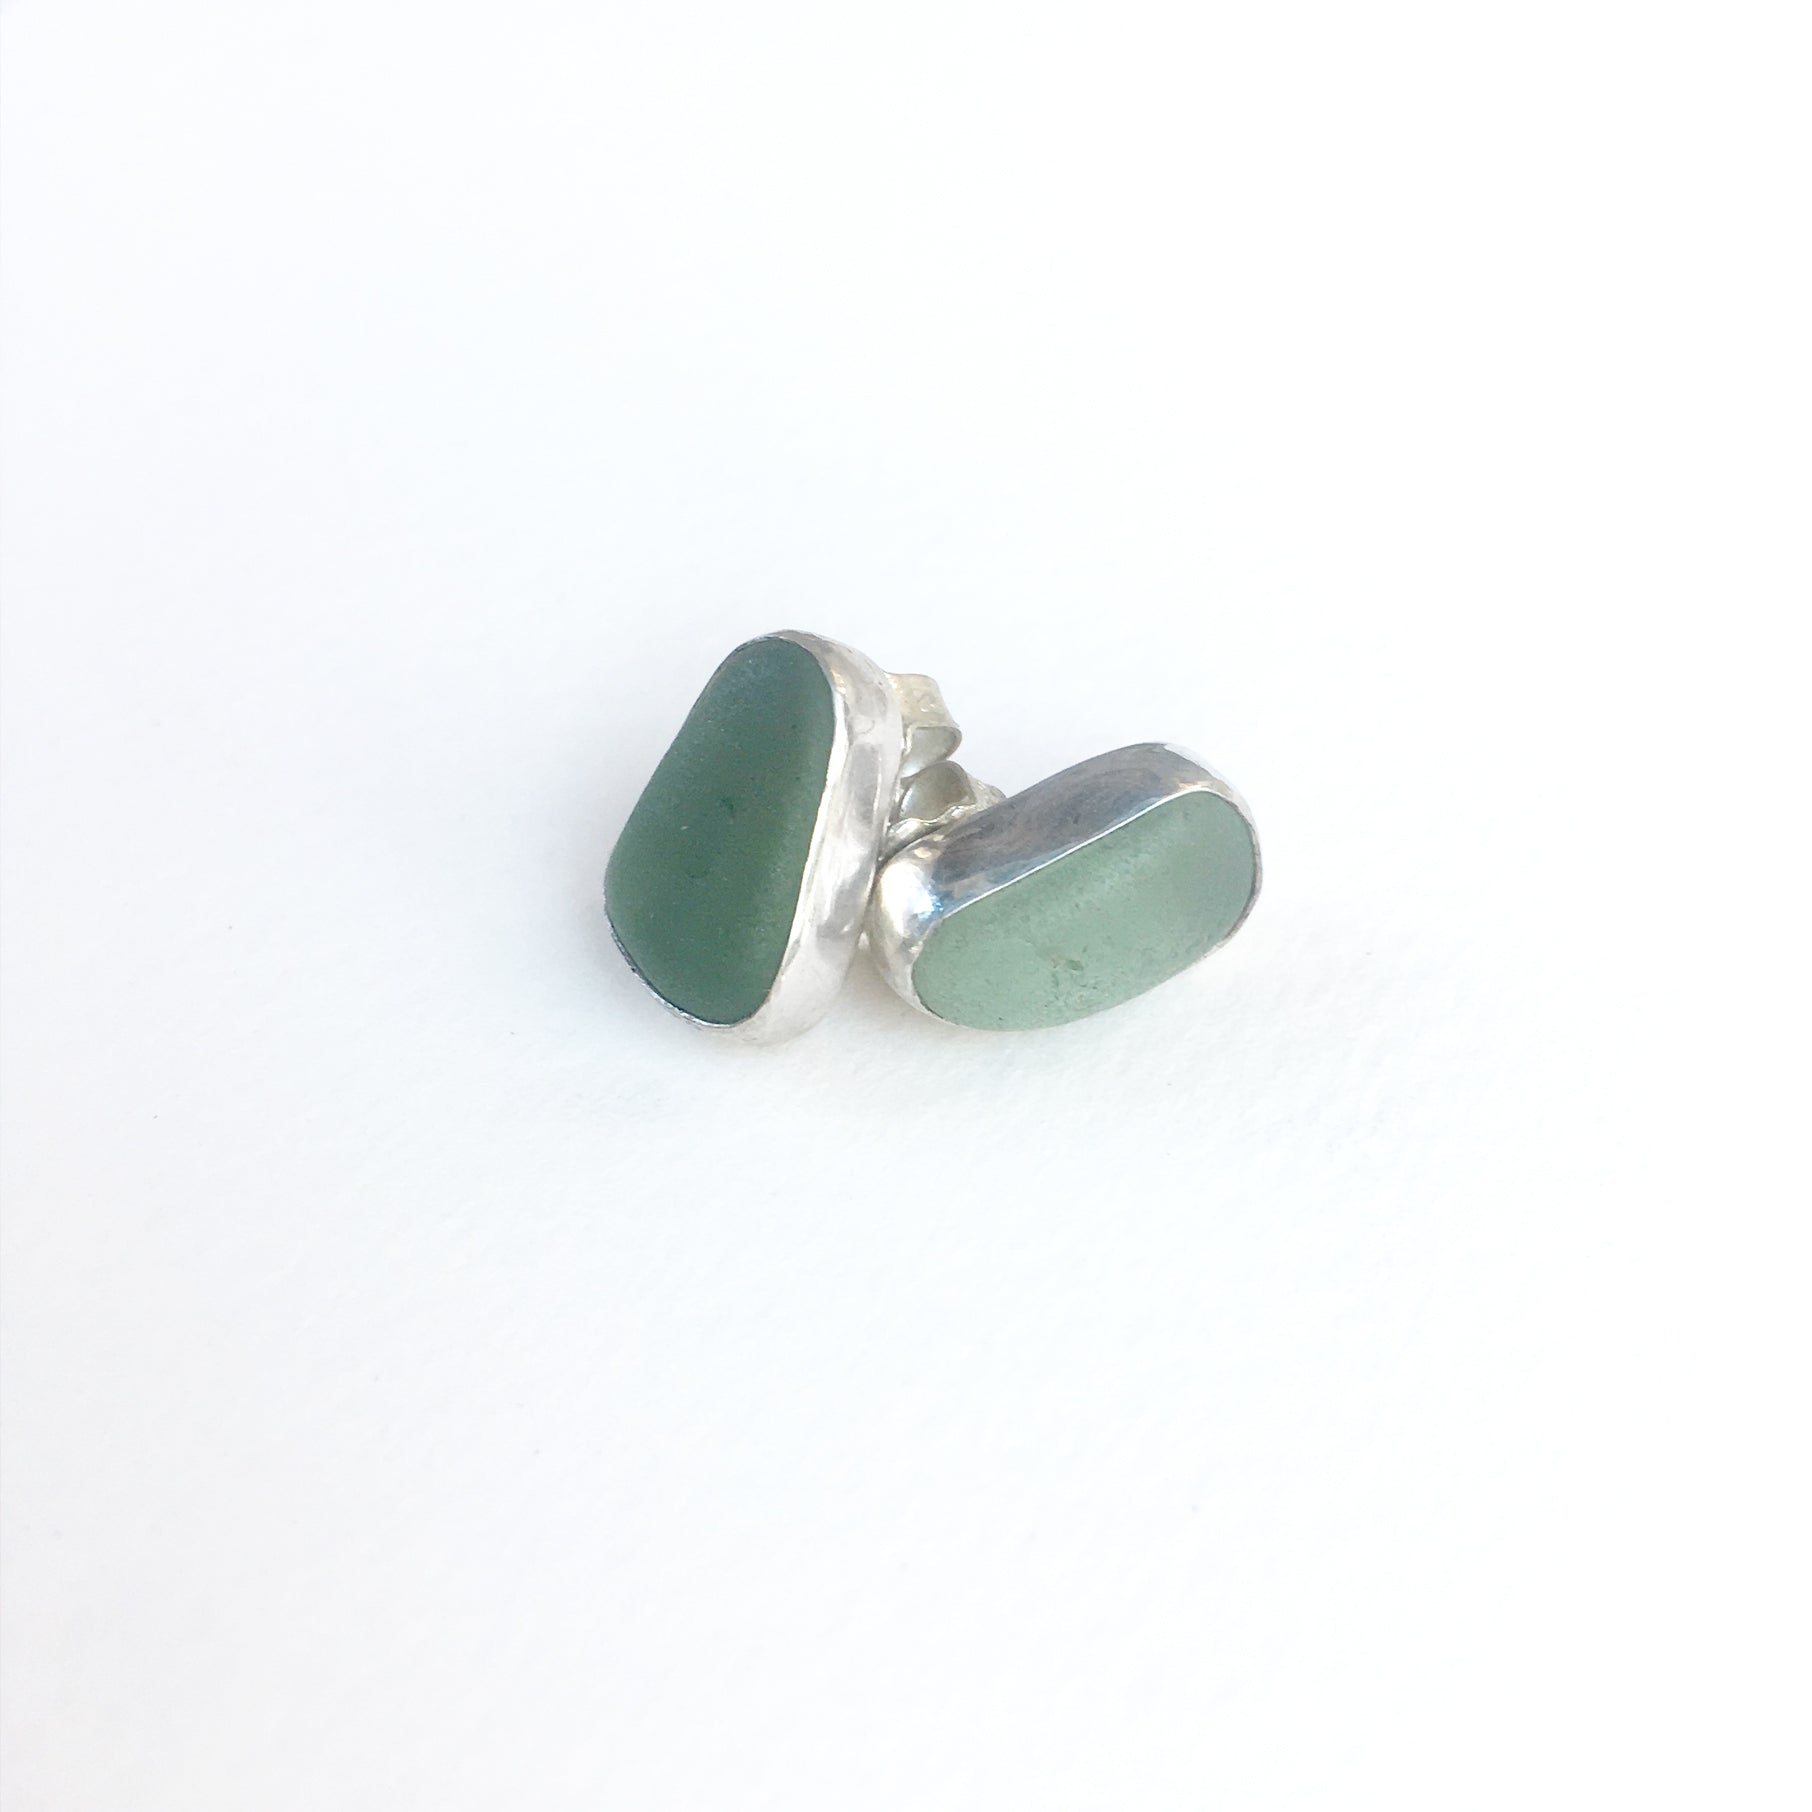 Seafoam Sea Glass Studs Shown on White Background